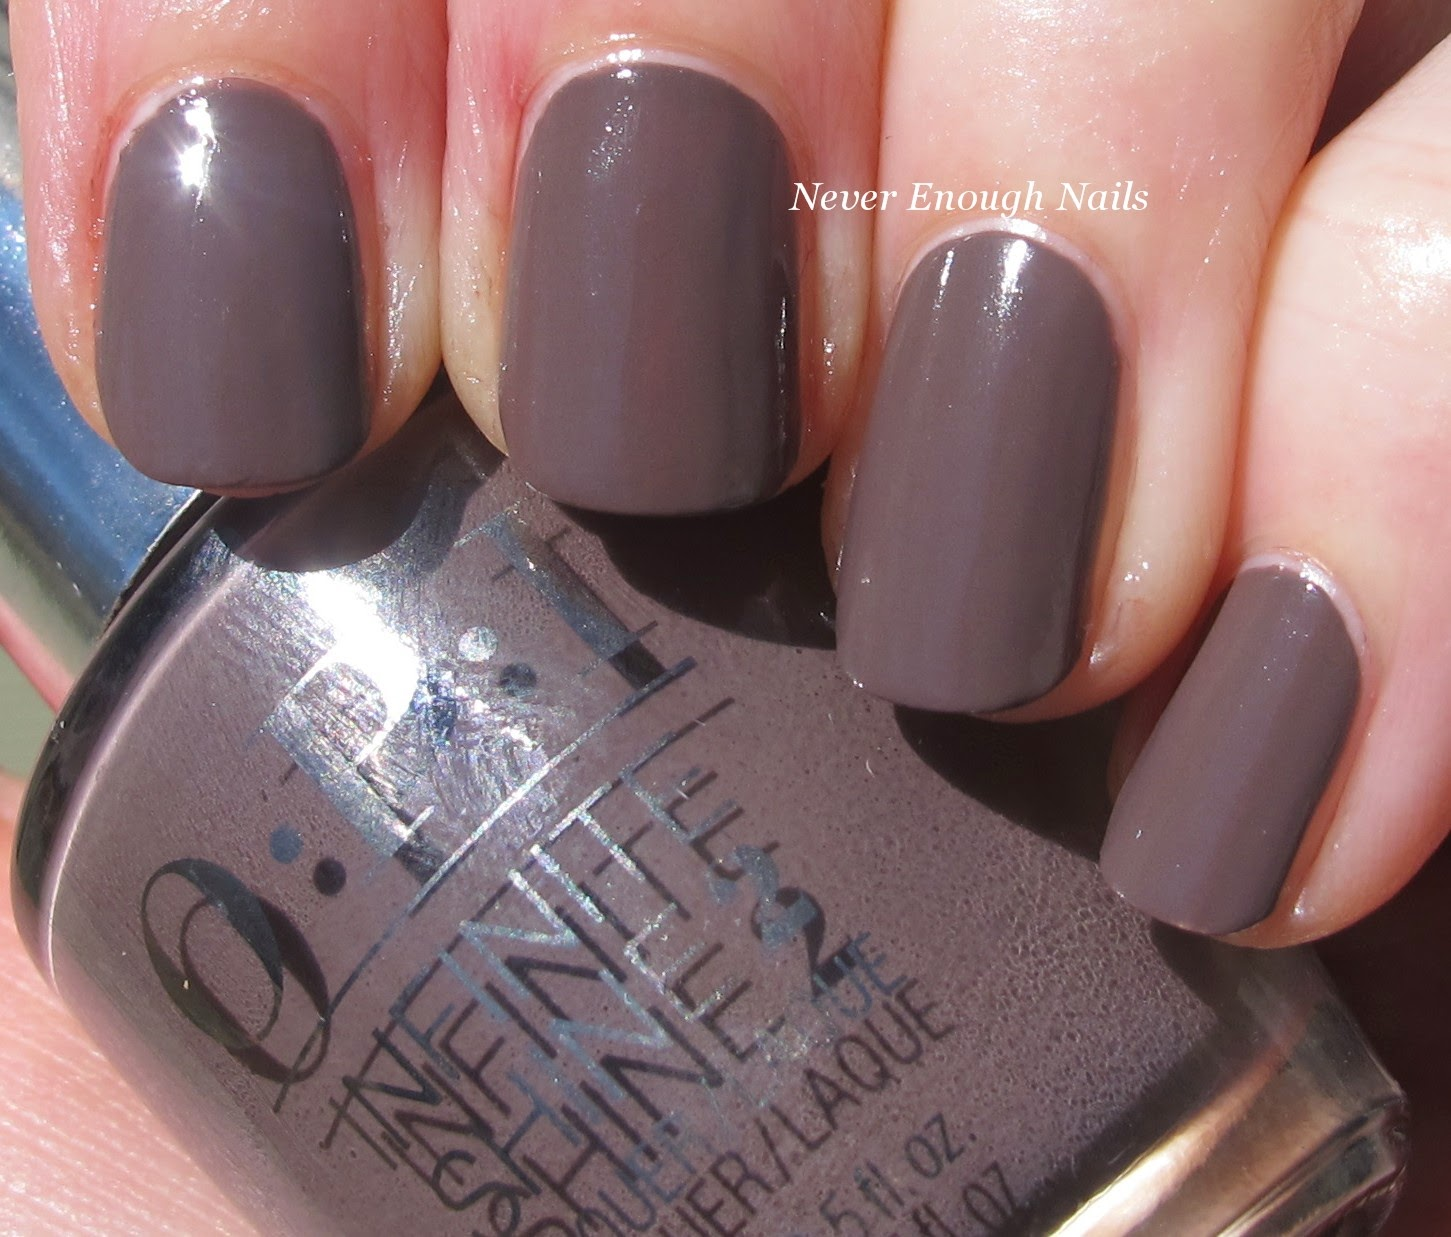 Never Enough Nails: OPI Infinite Shine Swatches and Wear Test!